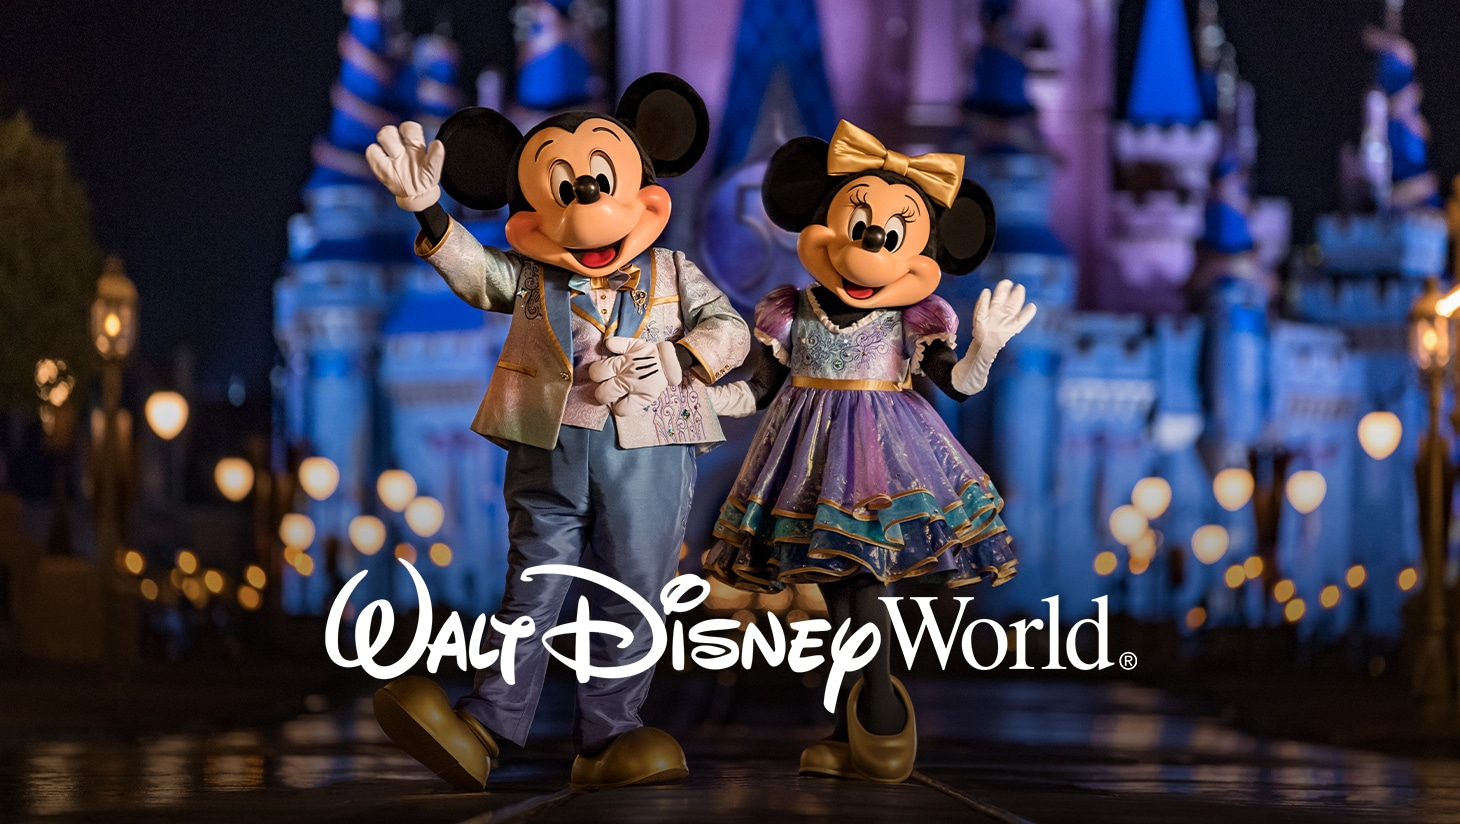 Mickey Mouse and Minnie Mouse in front of Cinderella Castle at Walt Disney World